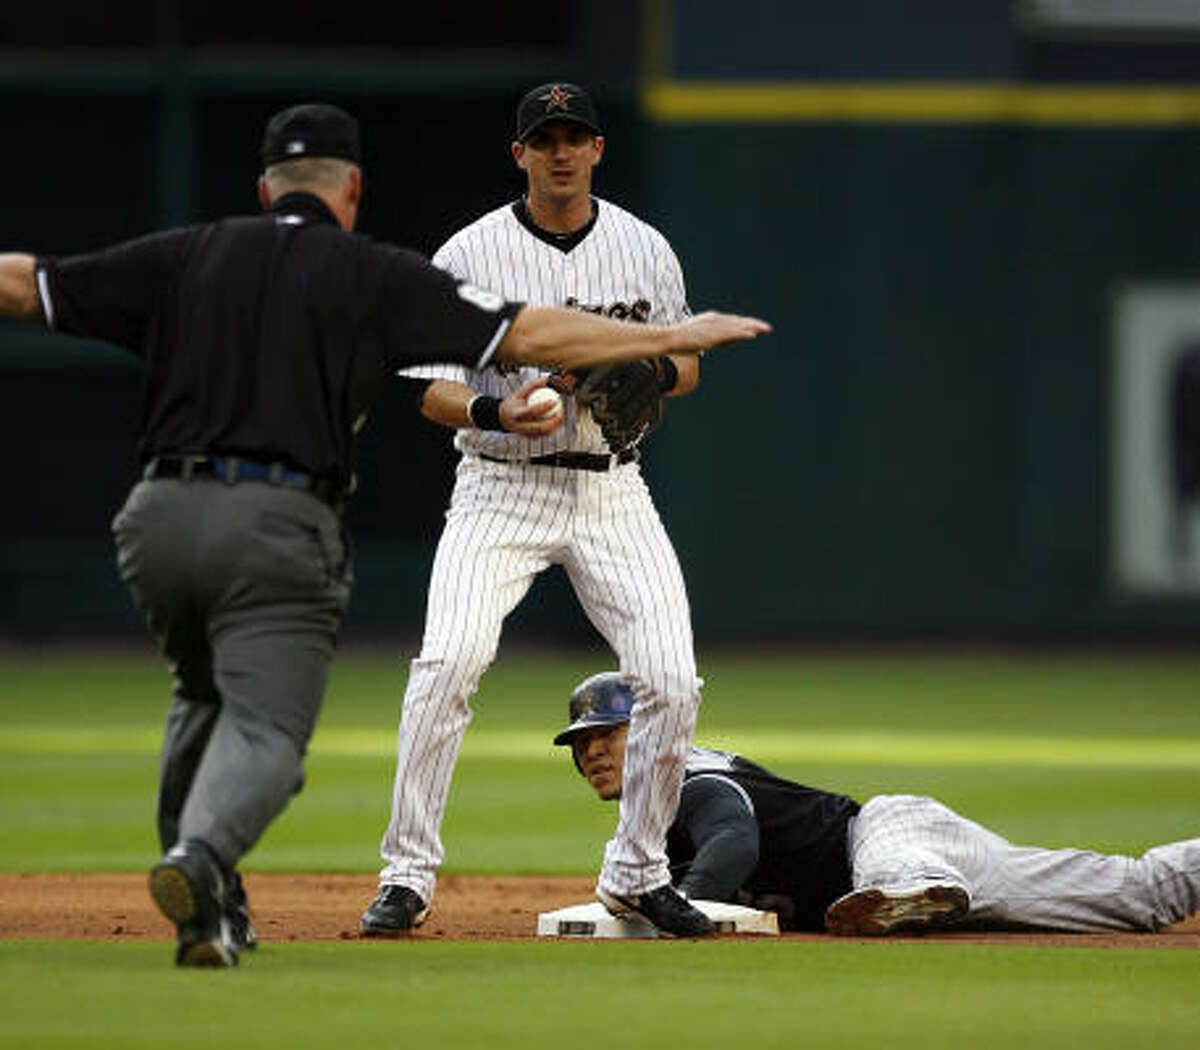 Rockies' Carlos Gonzalez is called safe next to the Astros' Tommy Manzella by second base umpire Ted Barrett after Gonzales stole the base in the first inning.